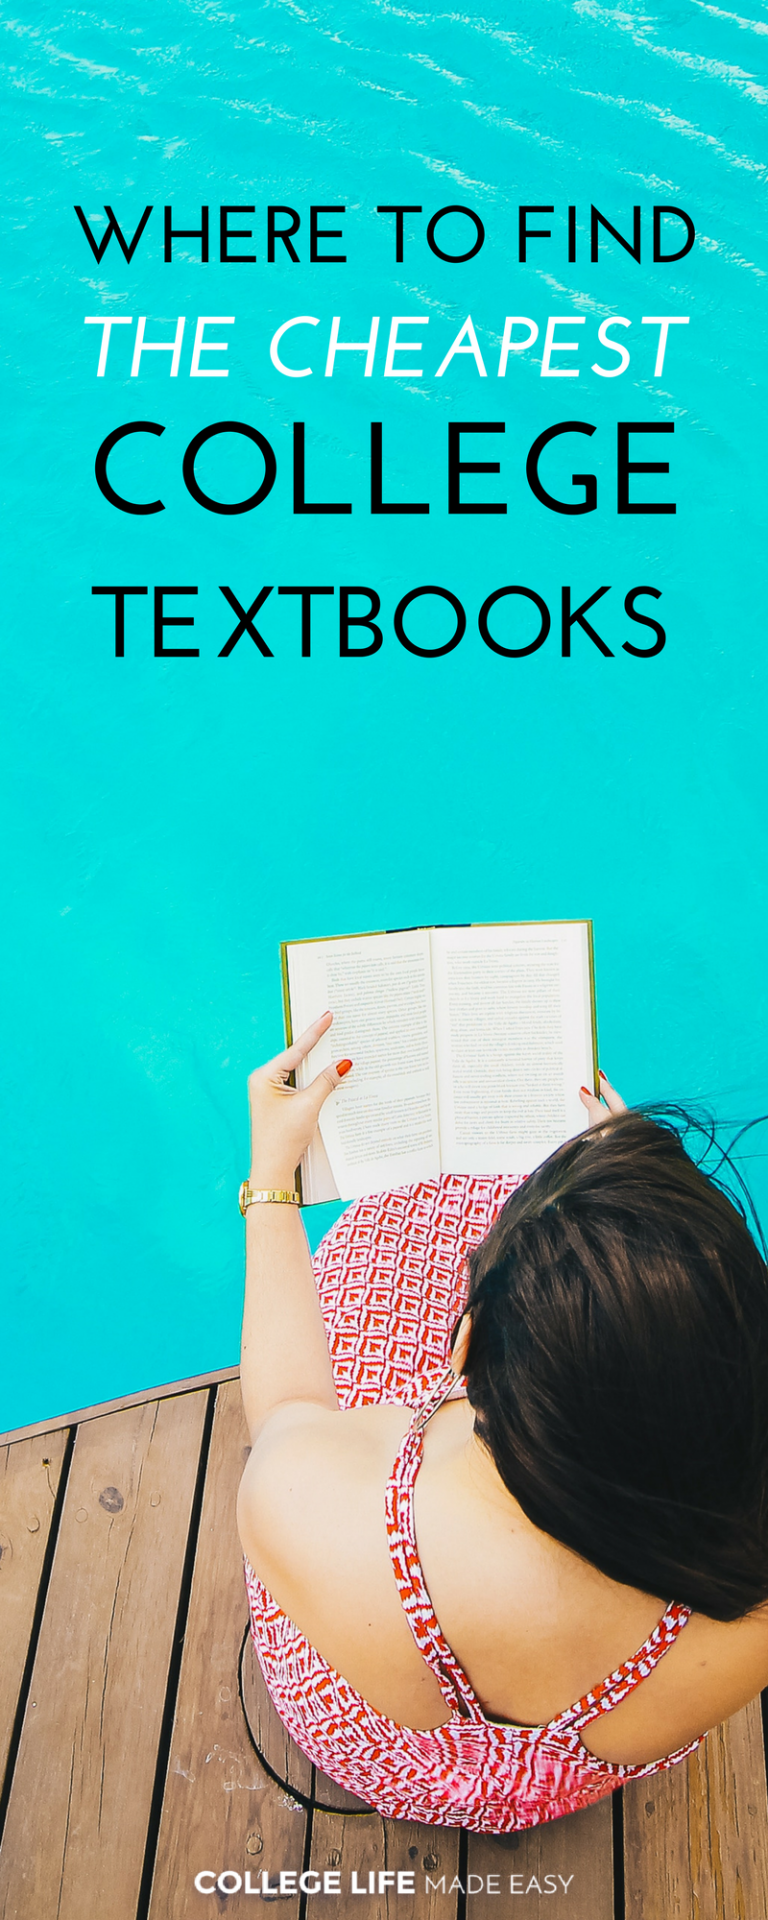 Cheap Textbooks Online >> The College Student S Guide To Getting Textbooks For Cheap Online